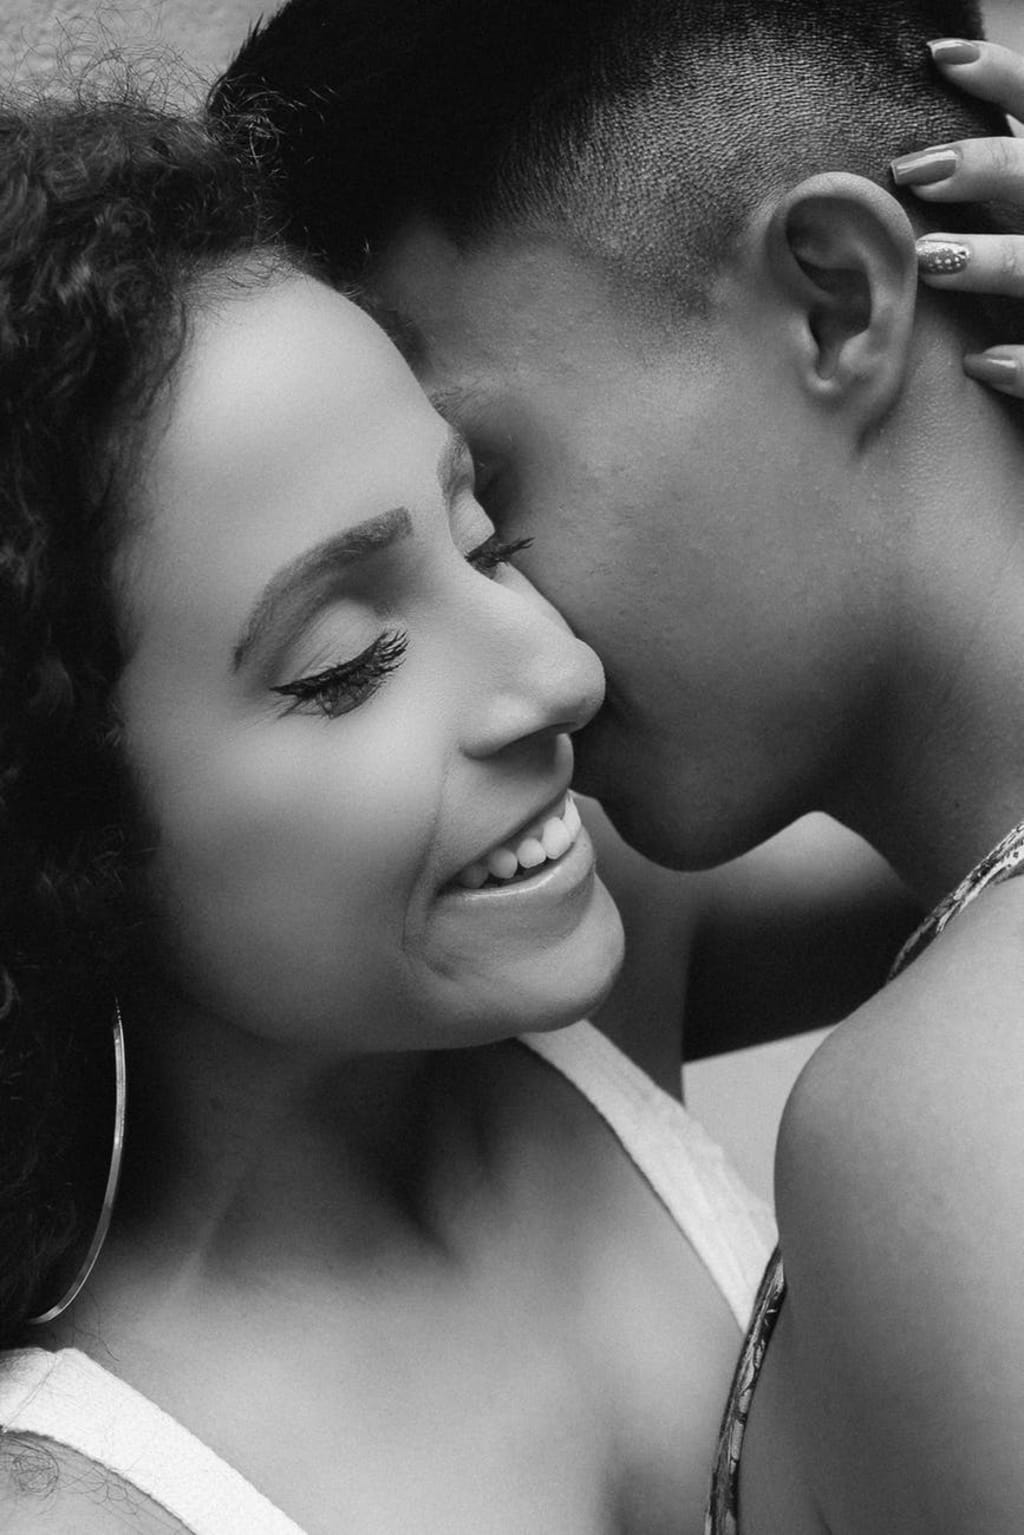 5 Tips to Make Your Ex Sexually Attracted to You Again